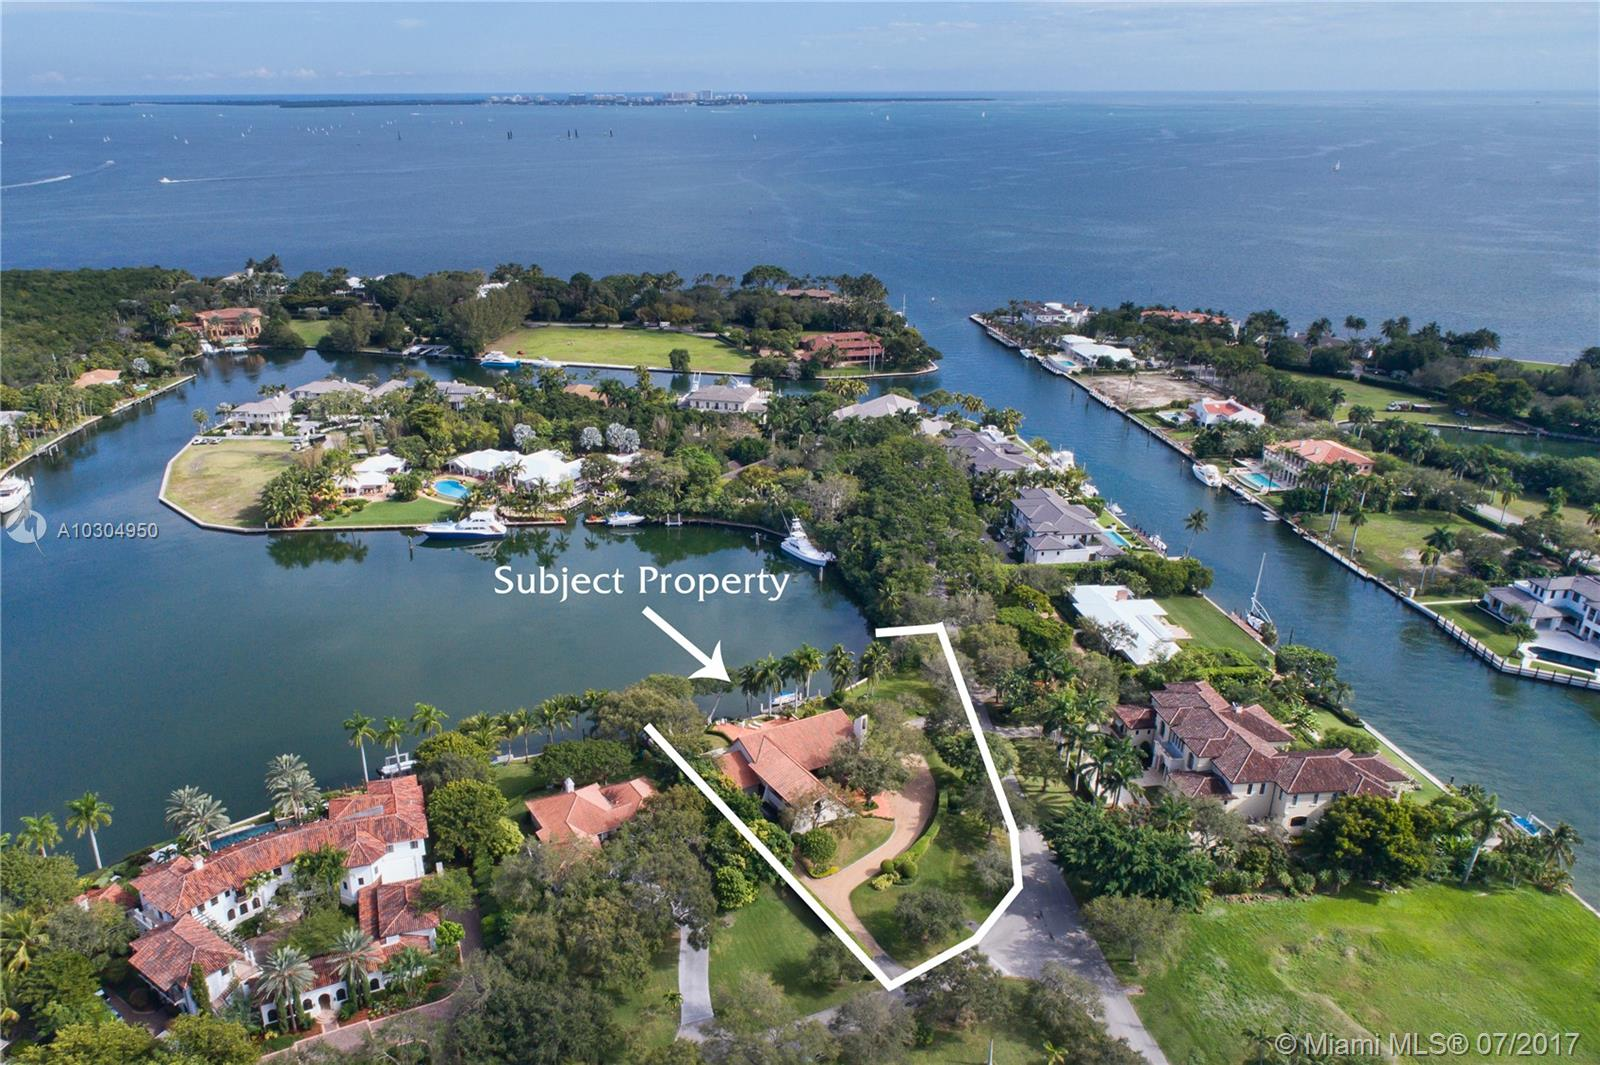 Spectacular Views Surround This Contemporary Styled 5 Bed / 5 B Home In Gables Estates. This Family Home Features Wide Water Views From The Back And A Landscaped Cul-De-Sac Centered By The Tennis Courts From The Front. Additional Features Include A Spacious Play Room, Perfect For Billiards, Movie Watching, Or Large Family Gatherings As Well As A Beautifully Positioned First Floor Master Suite And Office. Along With A Three Car Garage, There Is Also A Separate Covered Parking Pavilion Adjacent To The Garage.